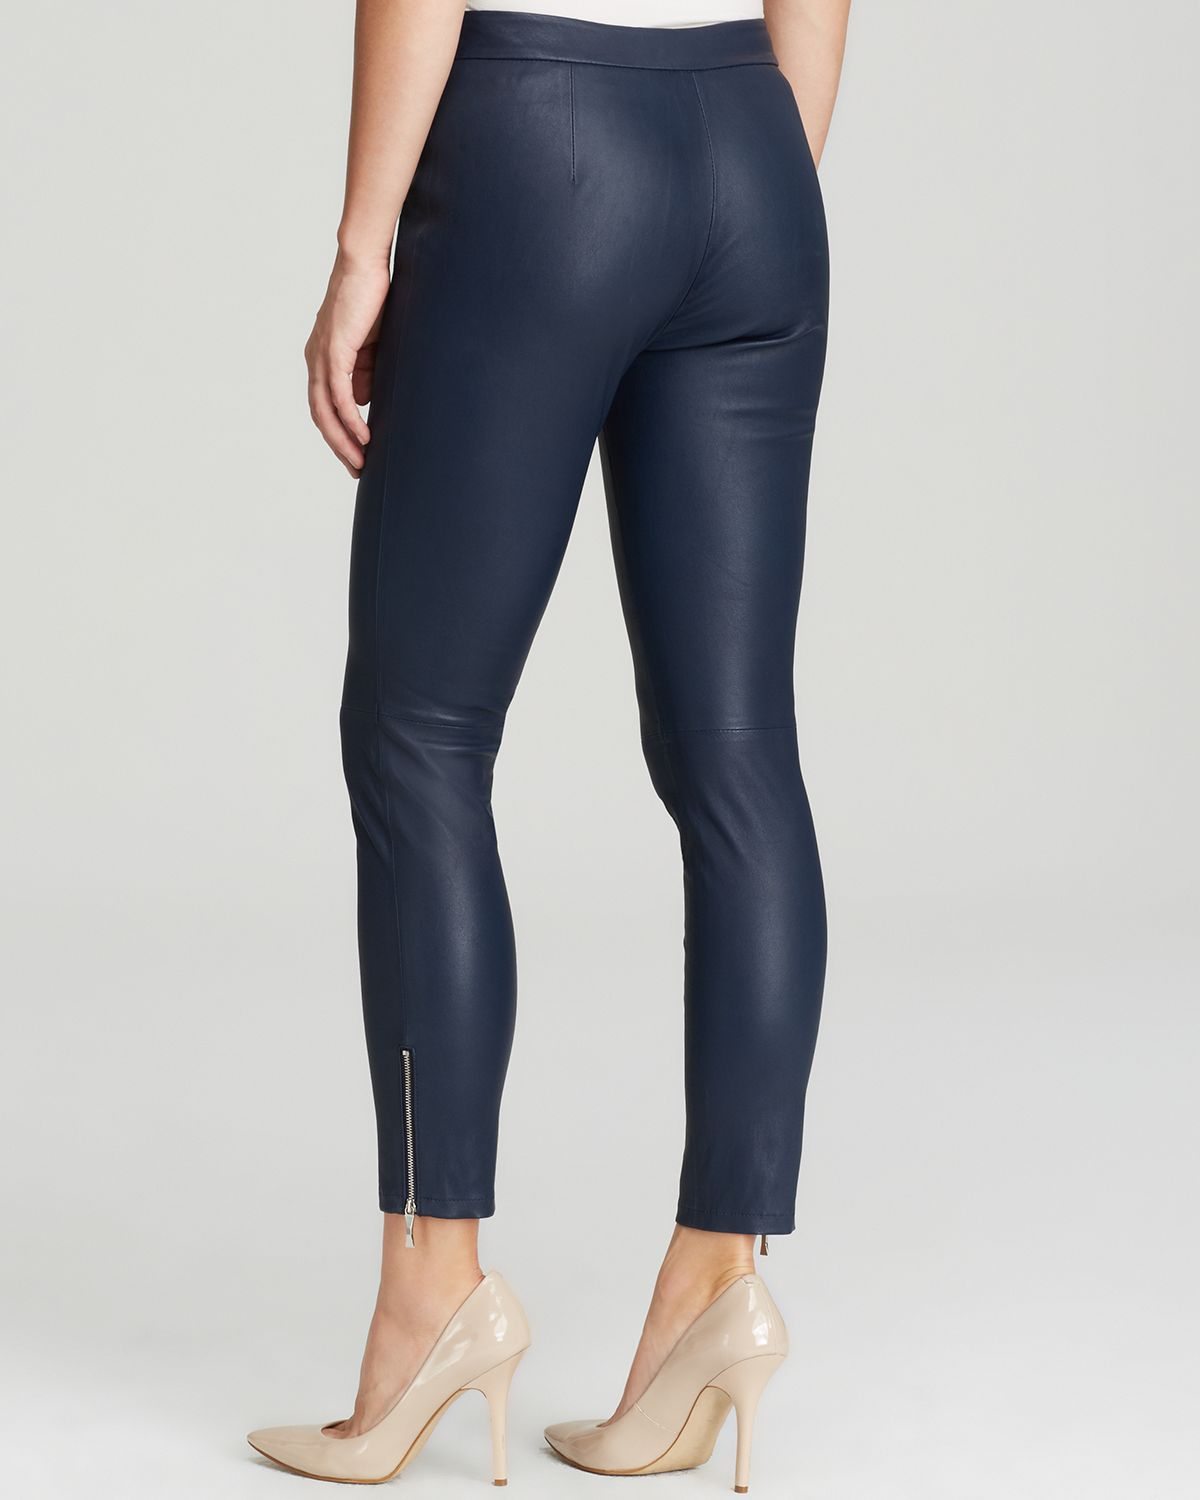 Kate spade new york Estella Skinny Leather Pants in Blue | Lyst